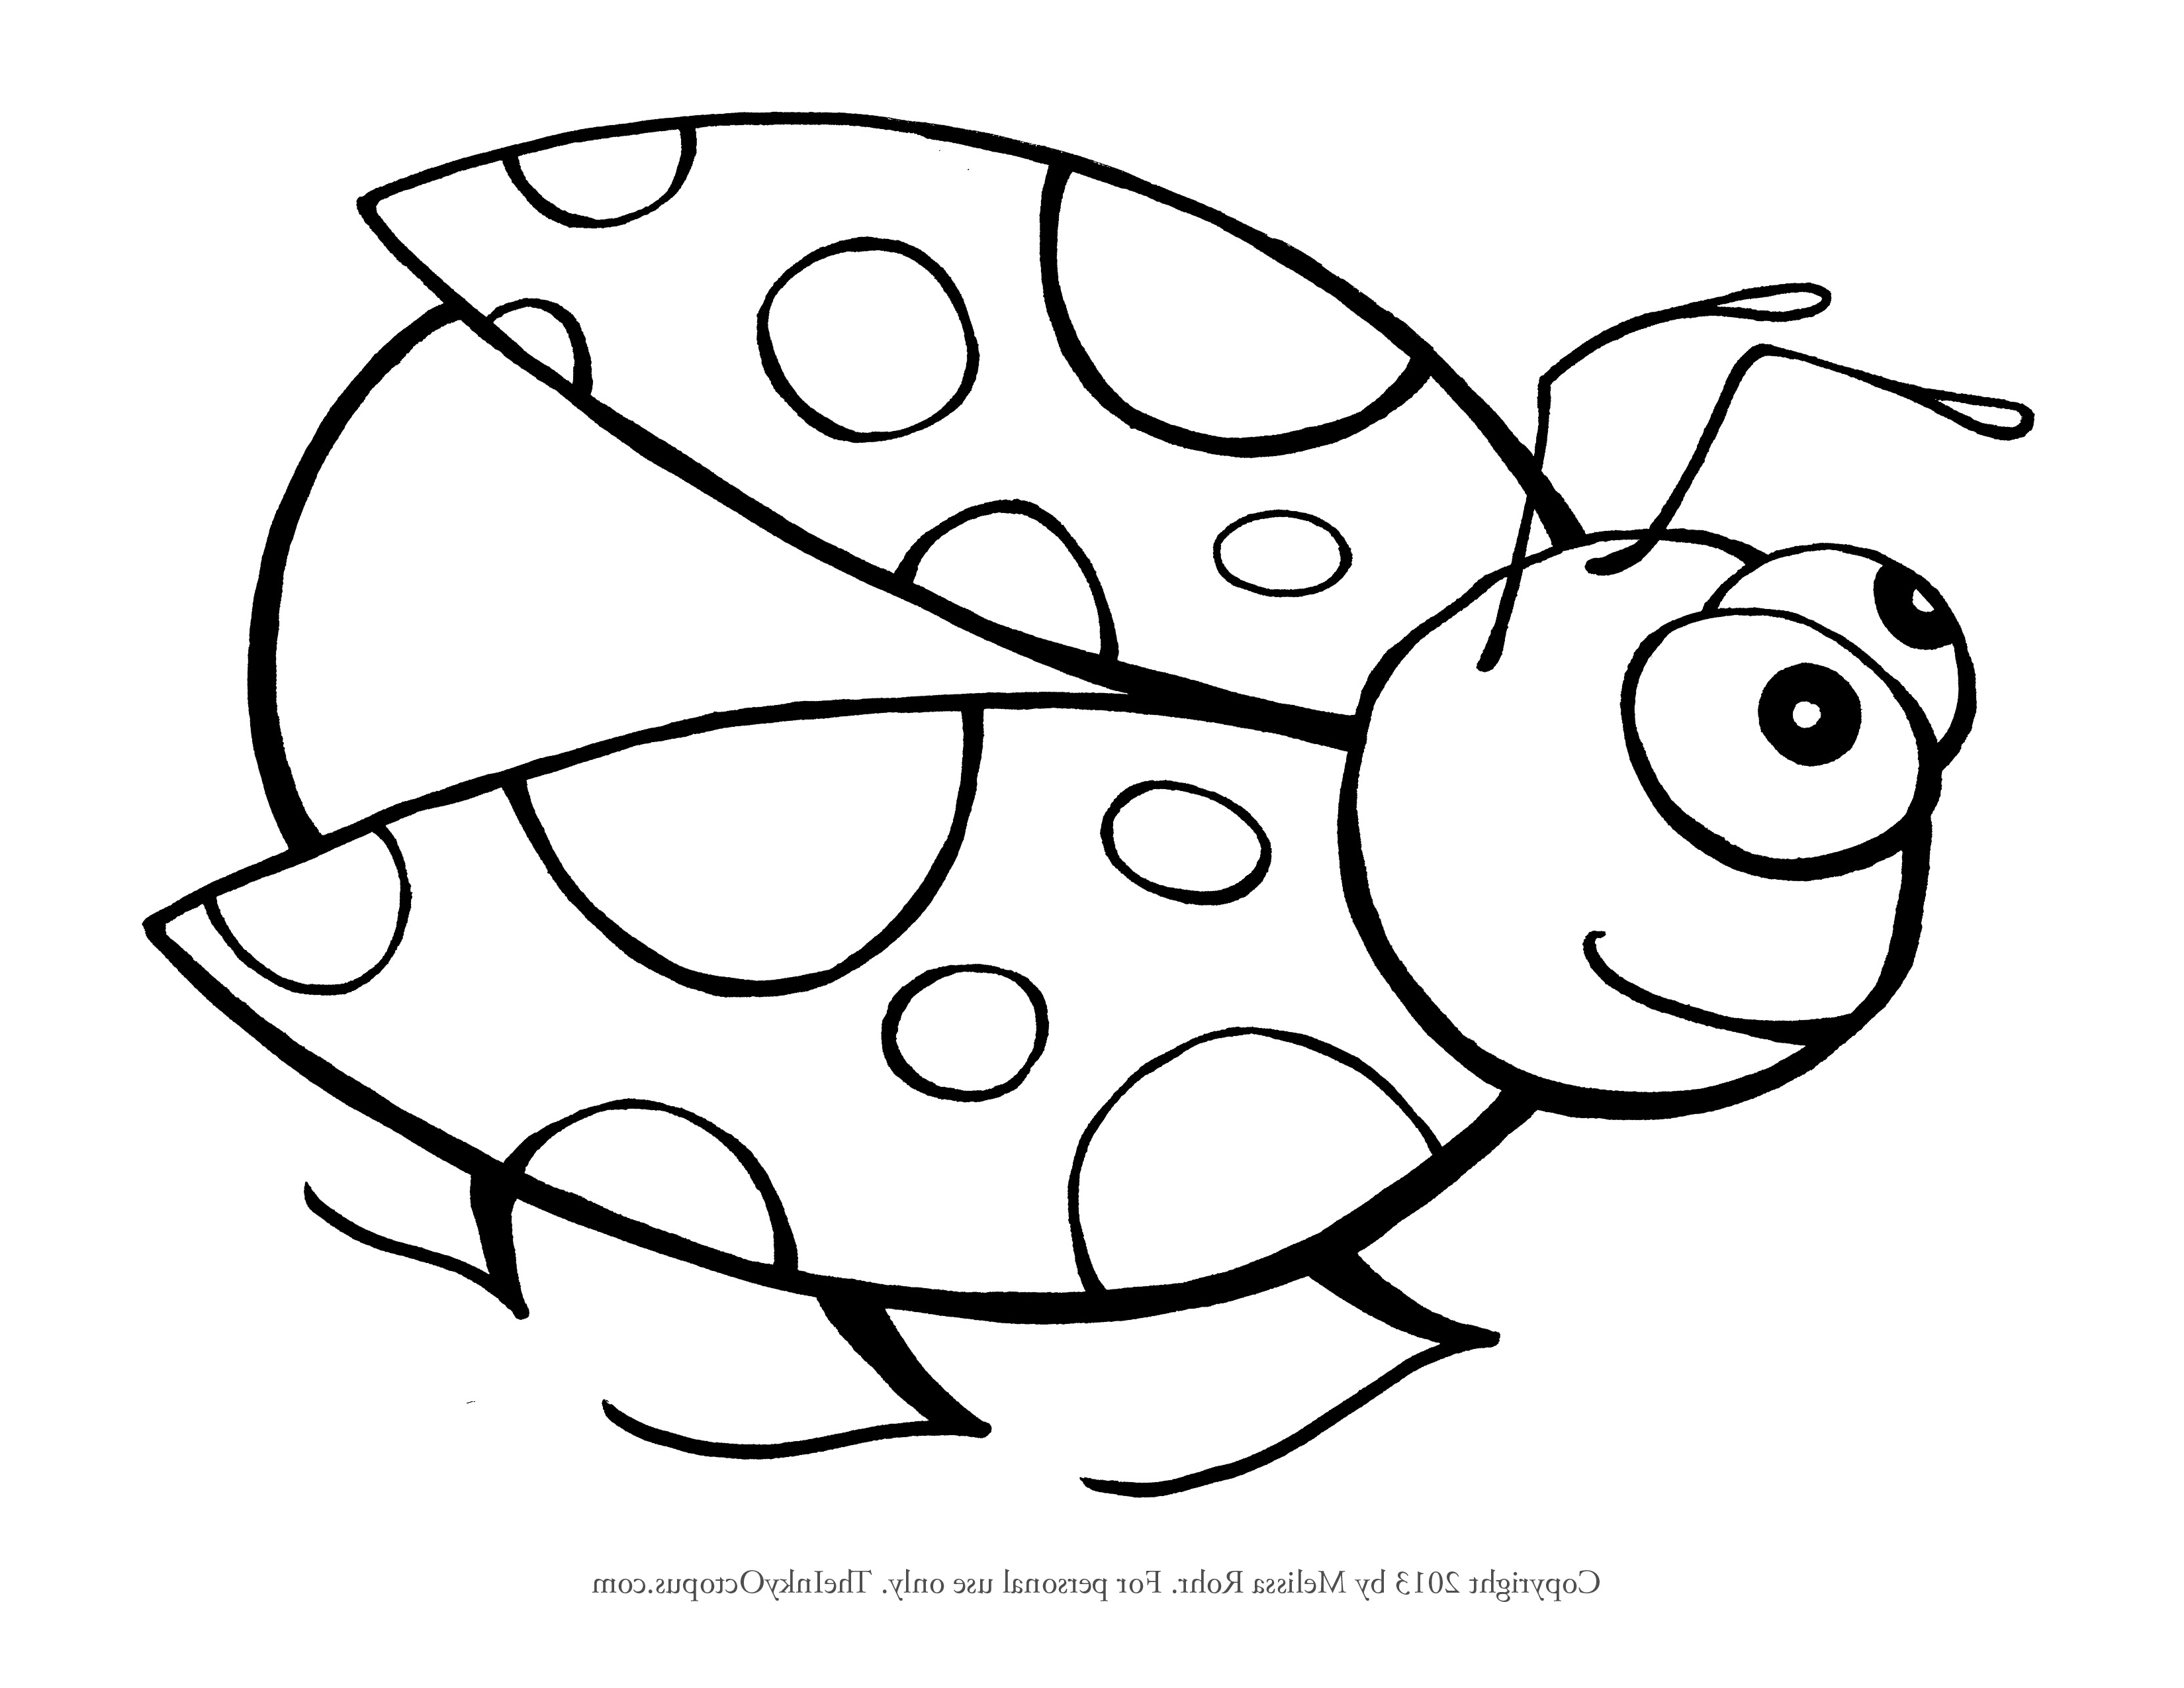 colouring ladybird ladybug coloring pages to download and print for free colouring ladybird